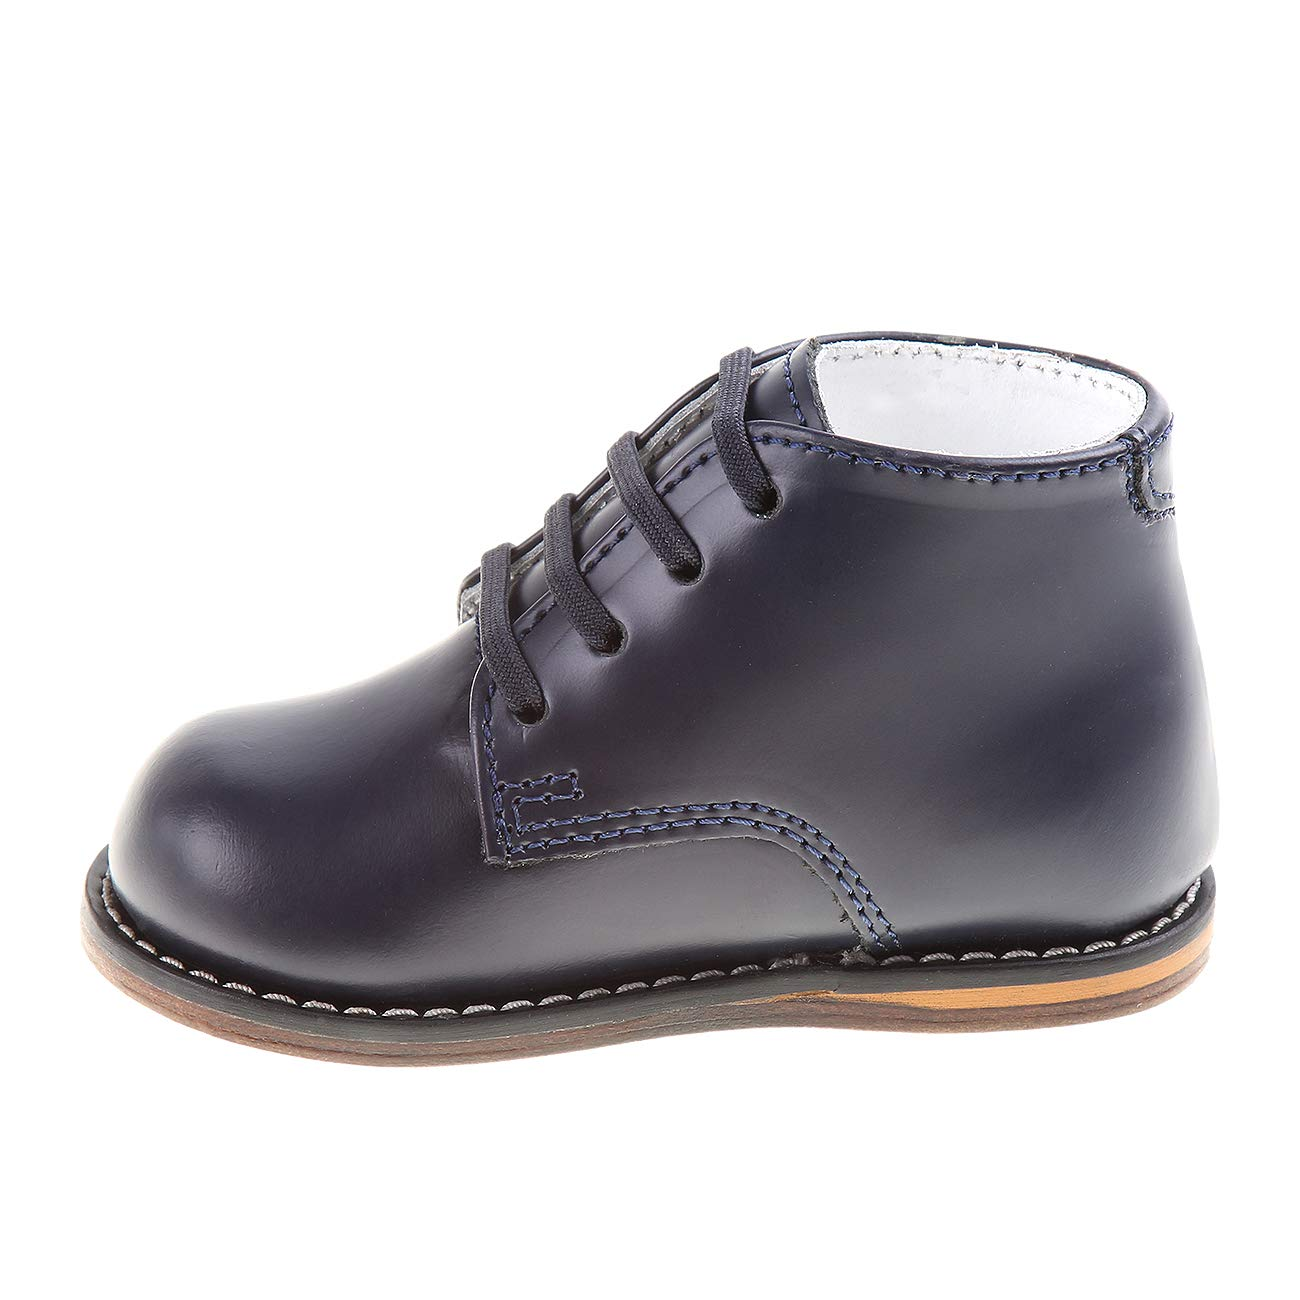 Josmo 2-8 Wide Walking Shoes Navy, 2 Wide